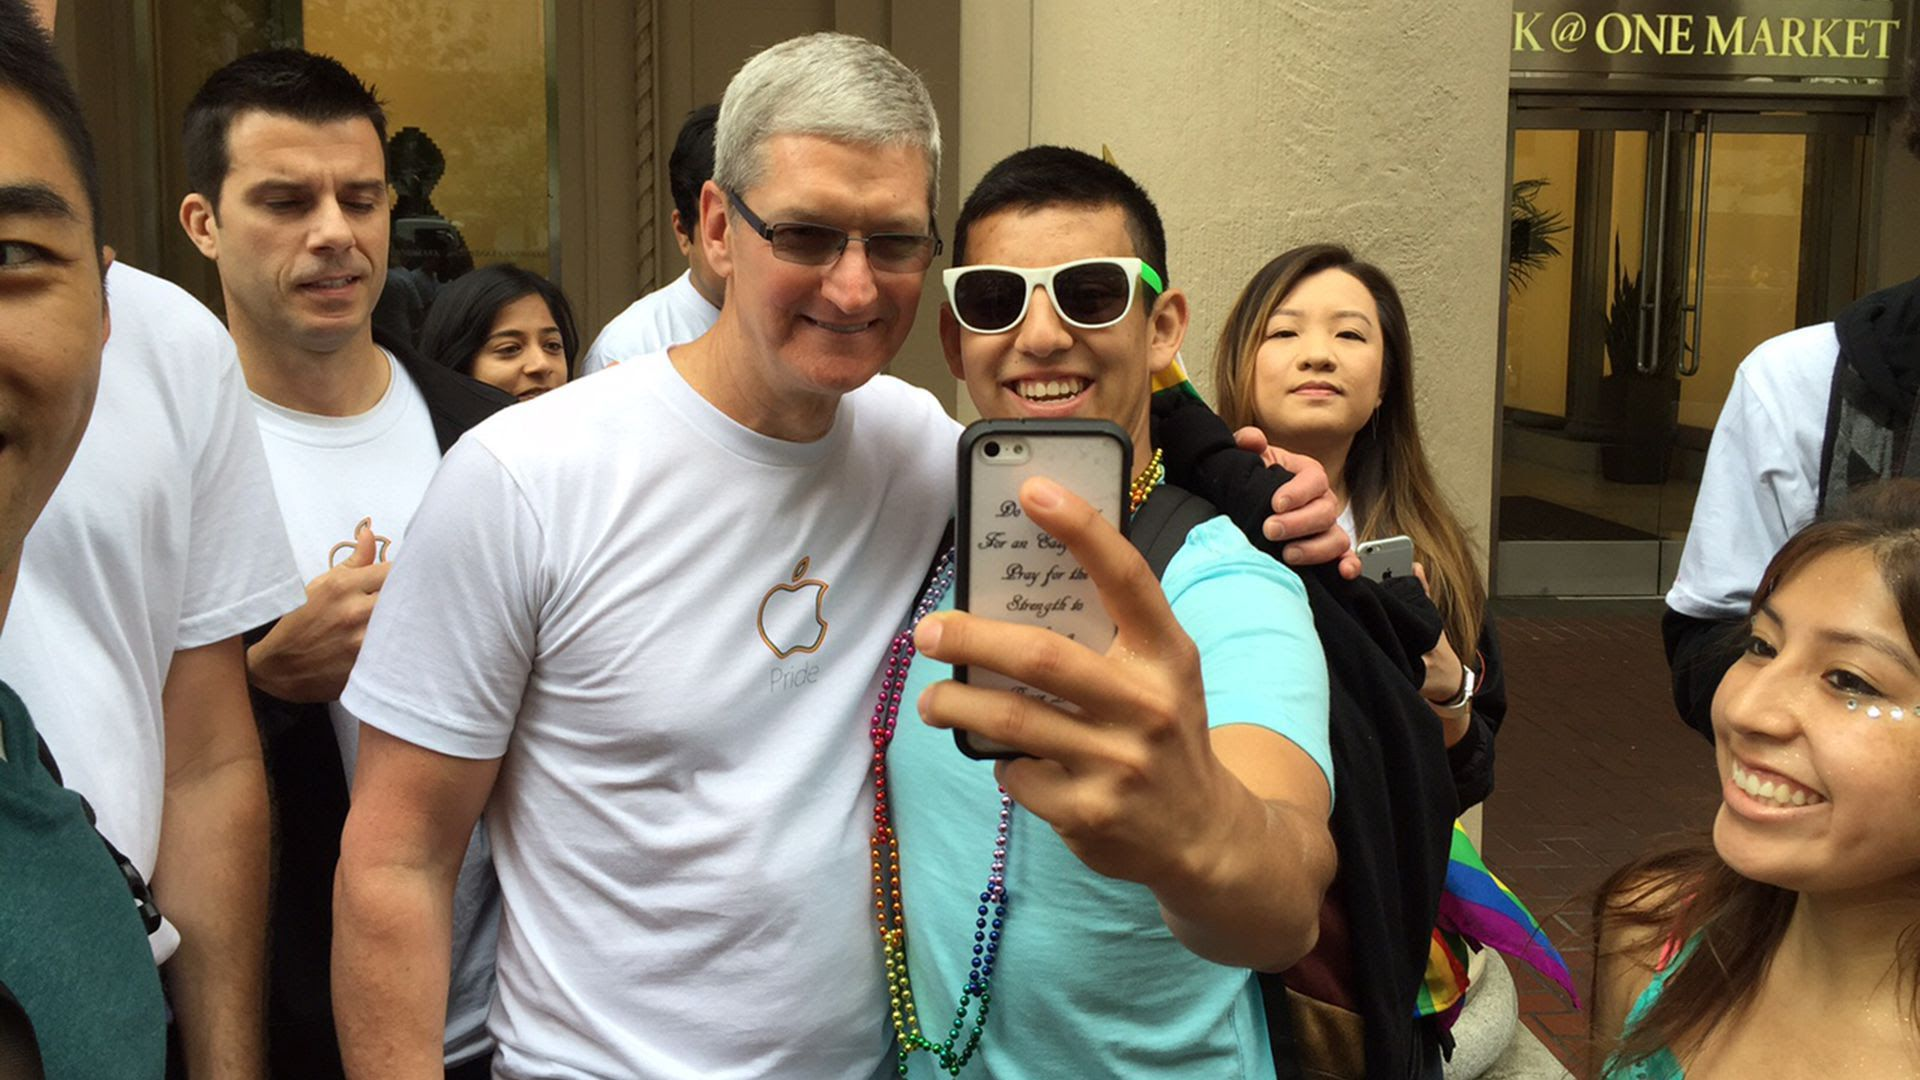 Apple CEO Tim Cook poses for a selfie with a group of teenagers